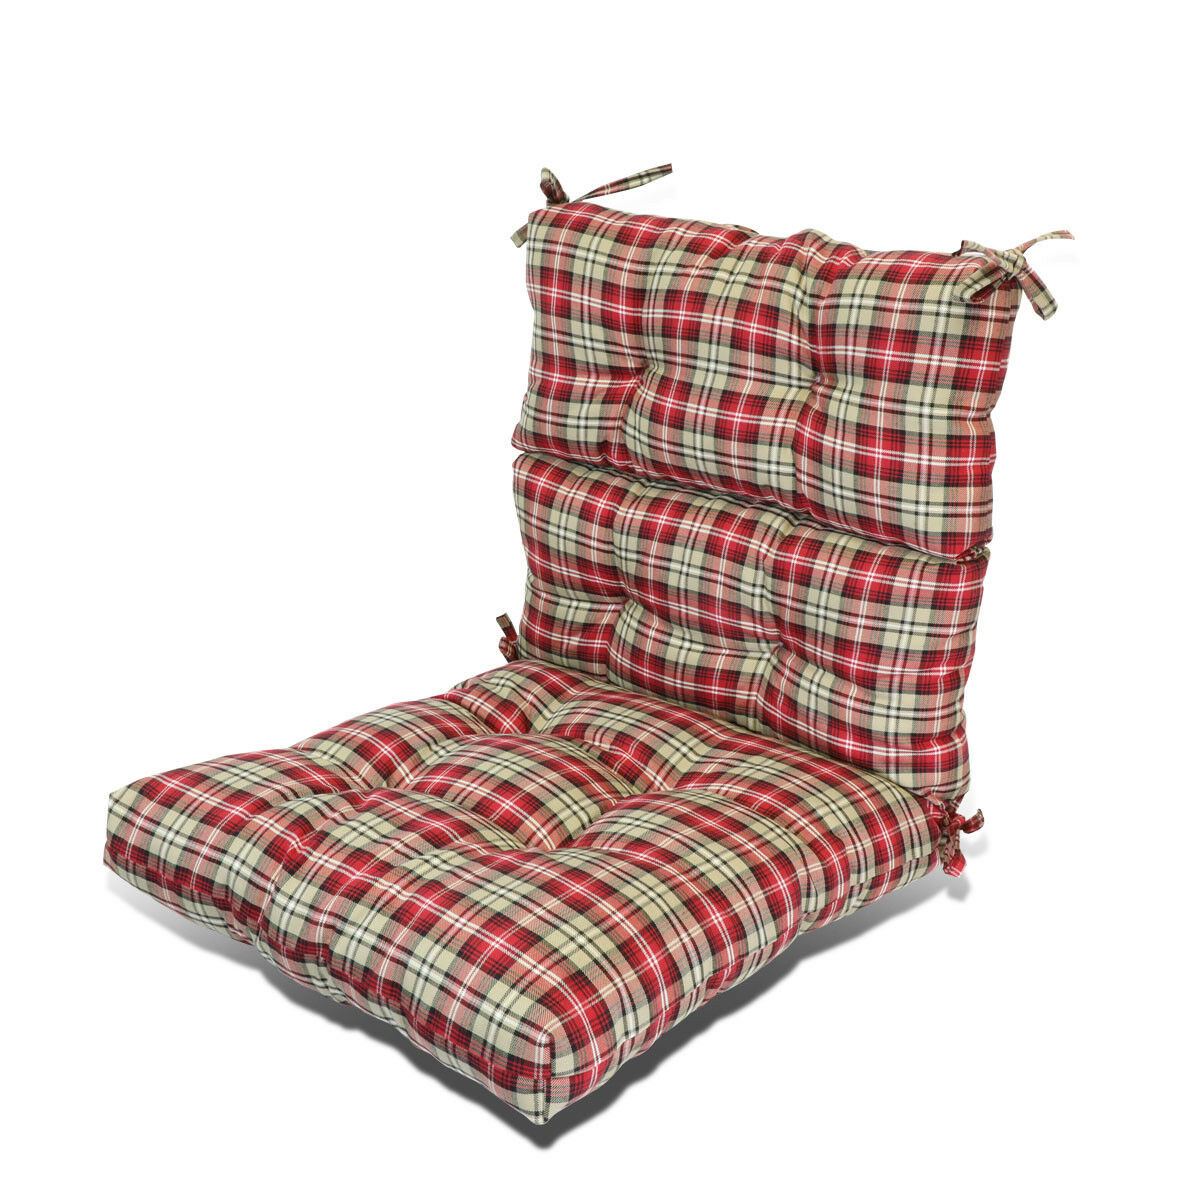 3 thick patio garden dining seat back chair cushion seat pad pillow red stripe 29741910775 ebay. Black Bedroom Furniture Sets. Home Design Ideas